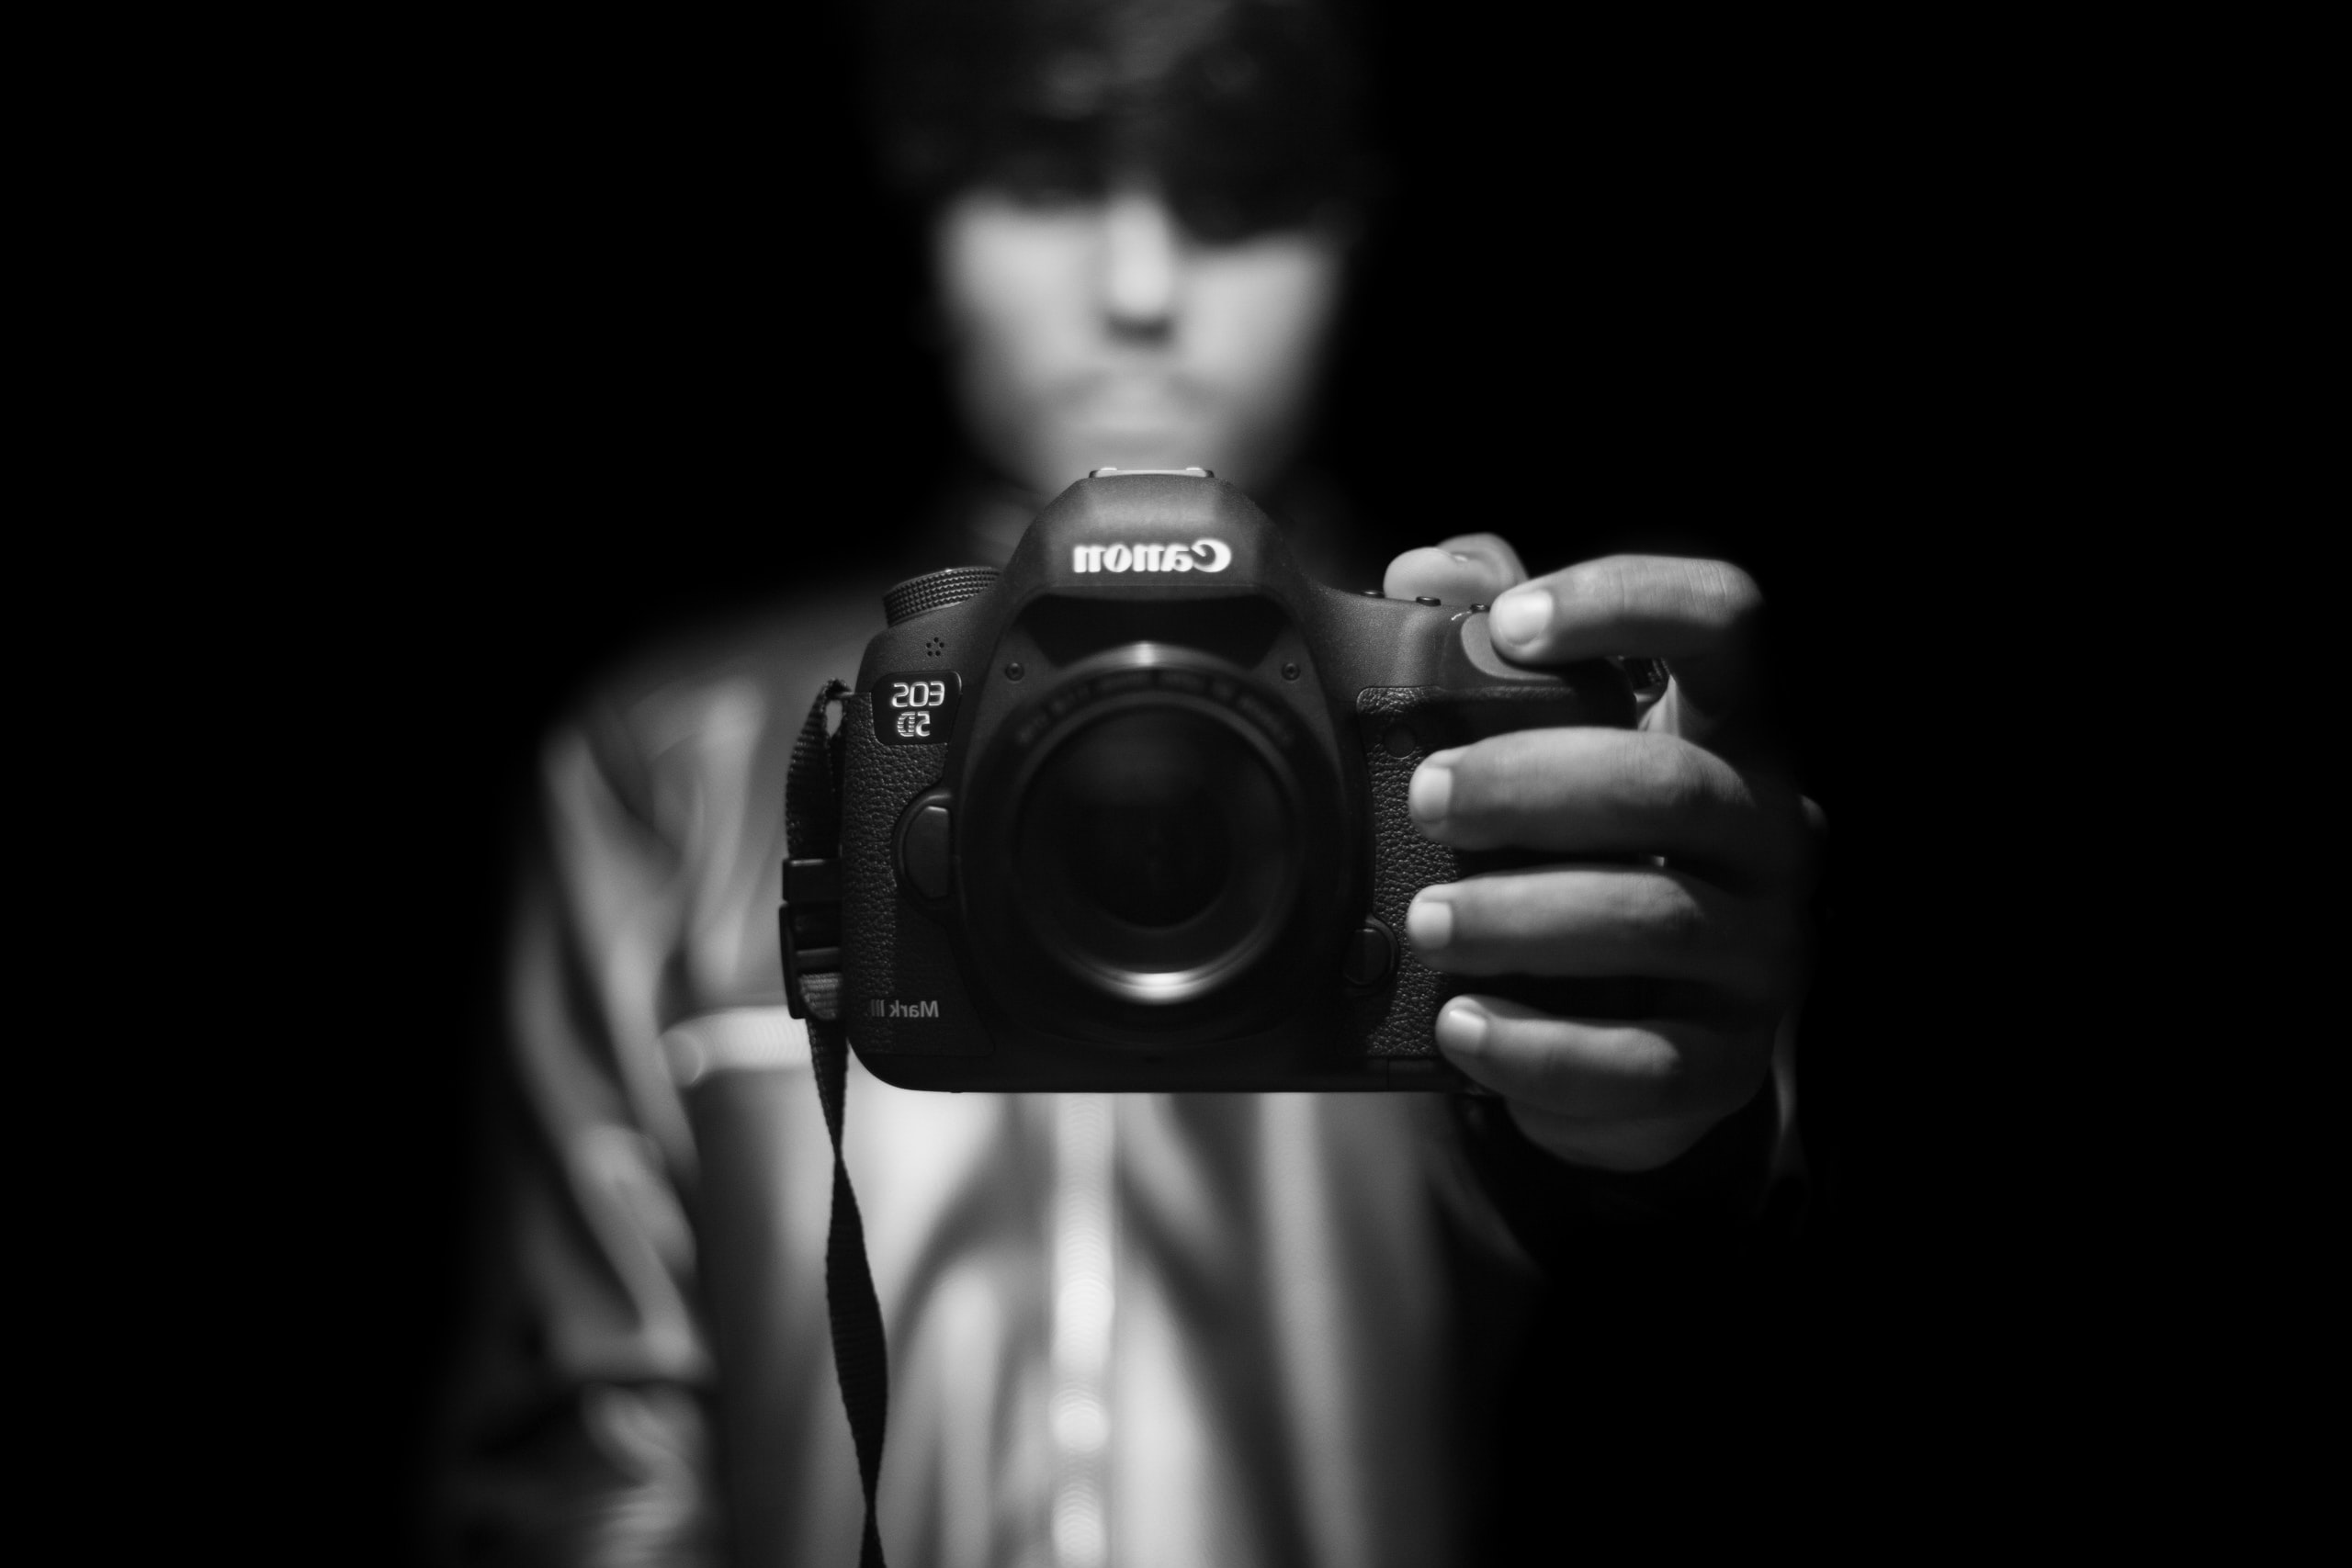 A black-and-white shot of a man holding a Canon camera in front of them